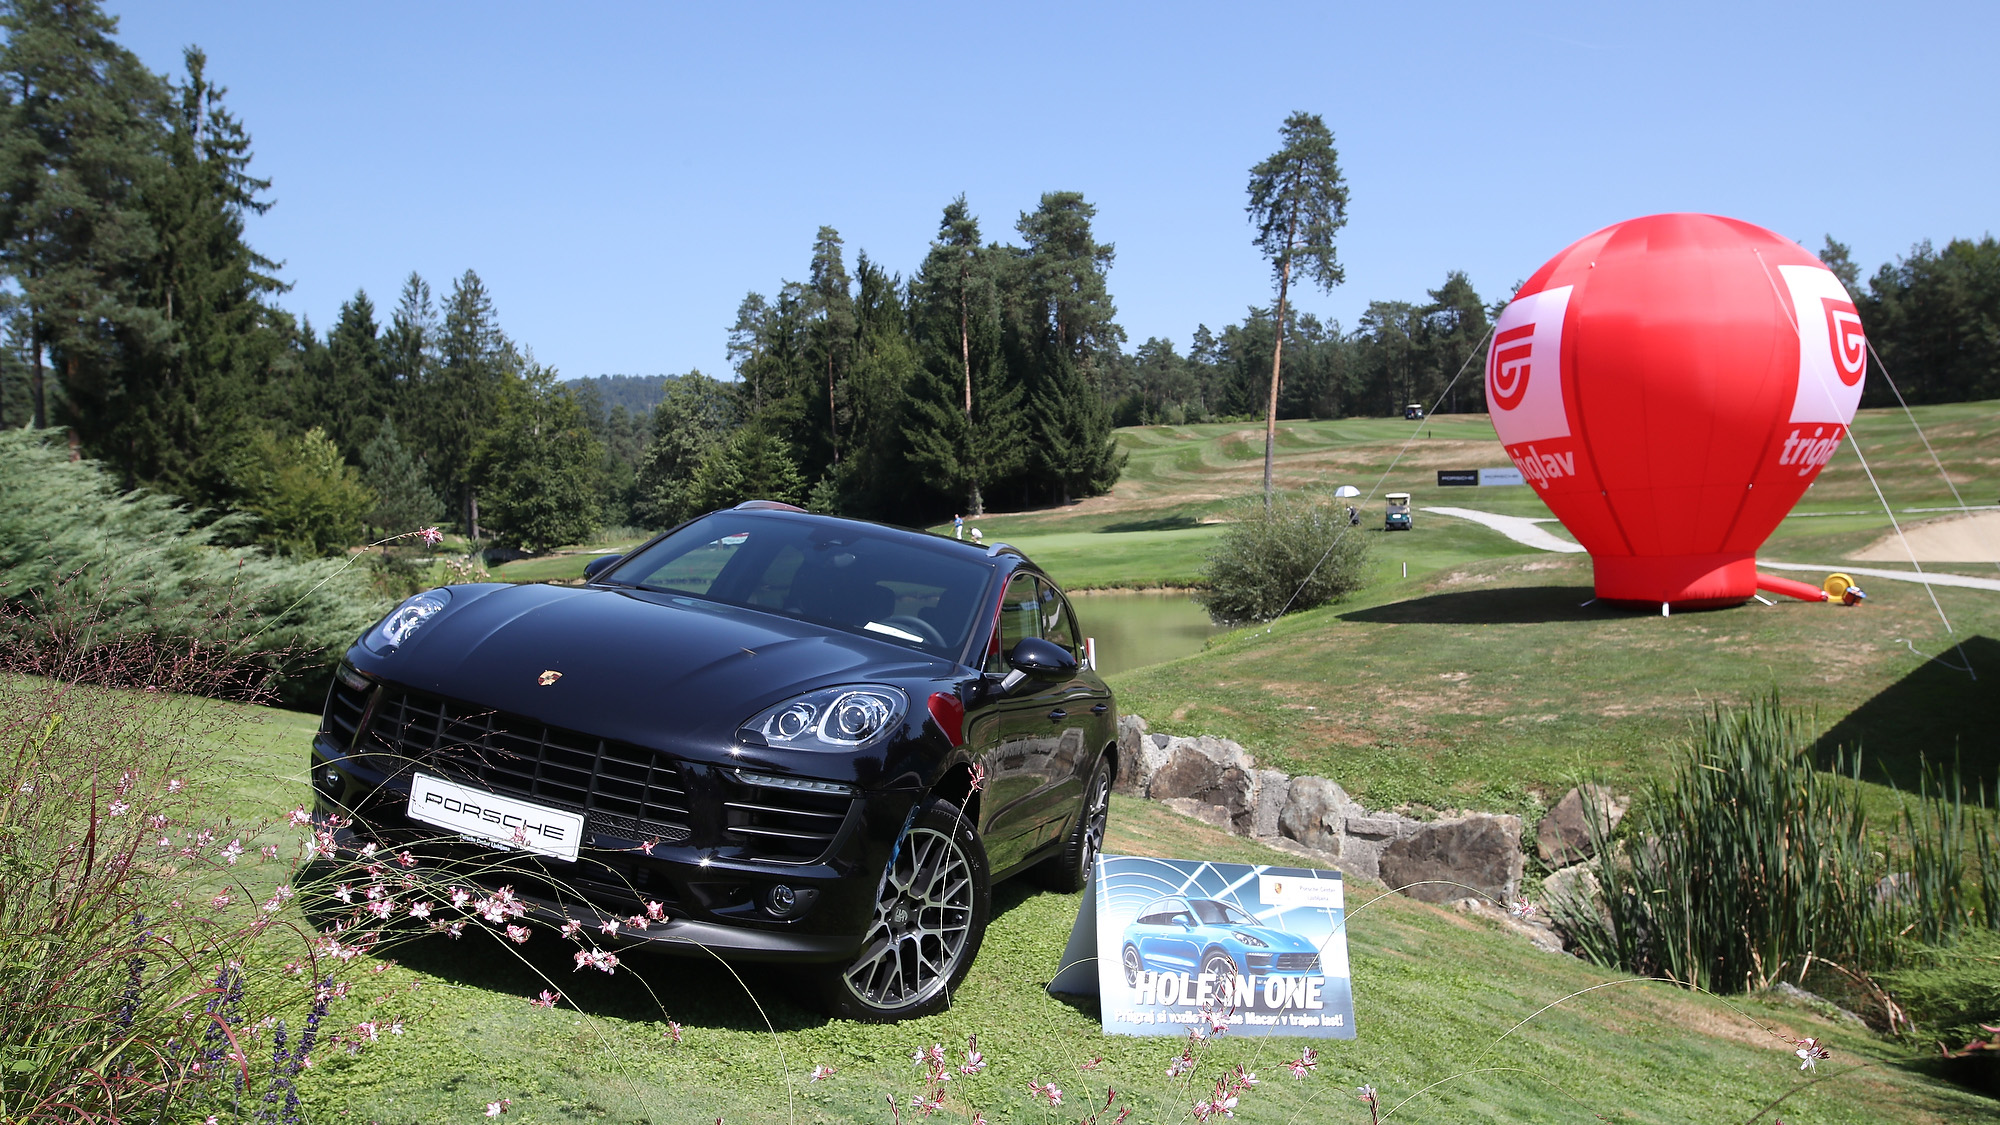 Macan hole in one golf